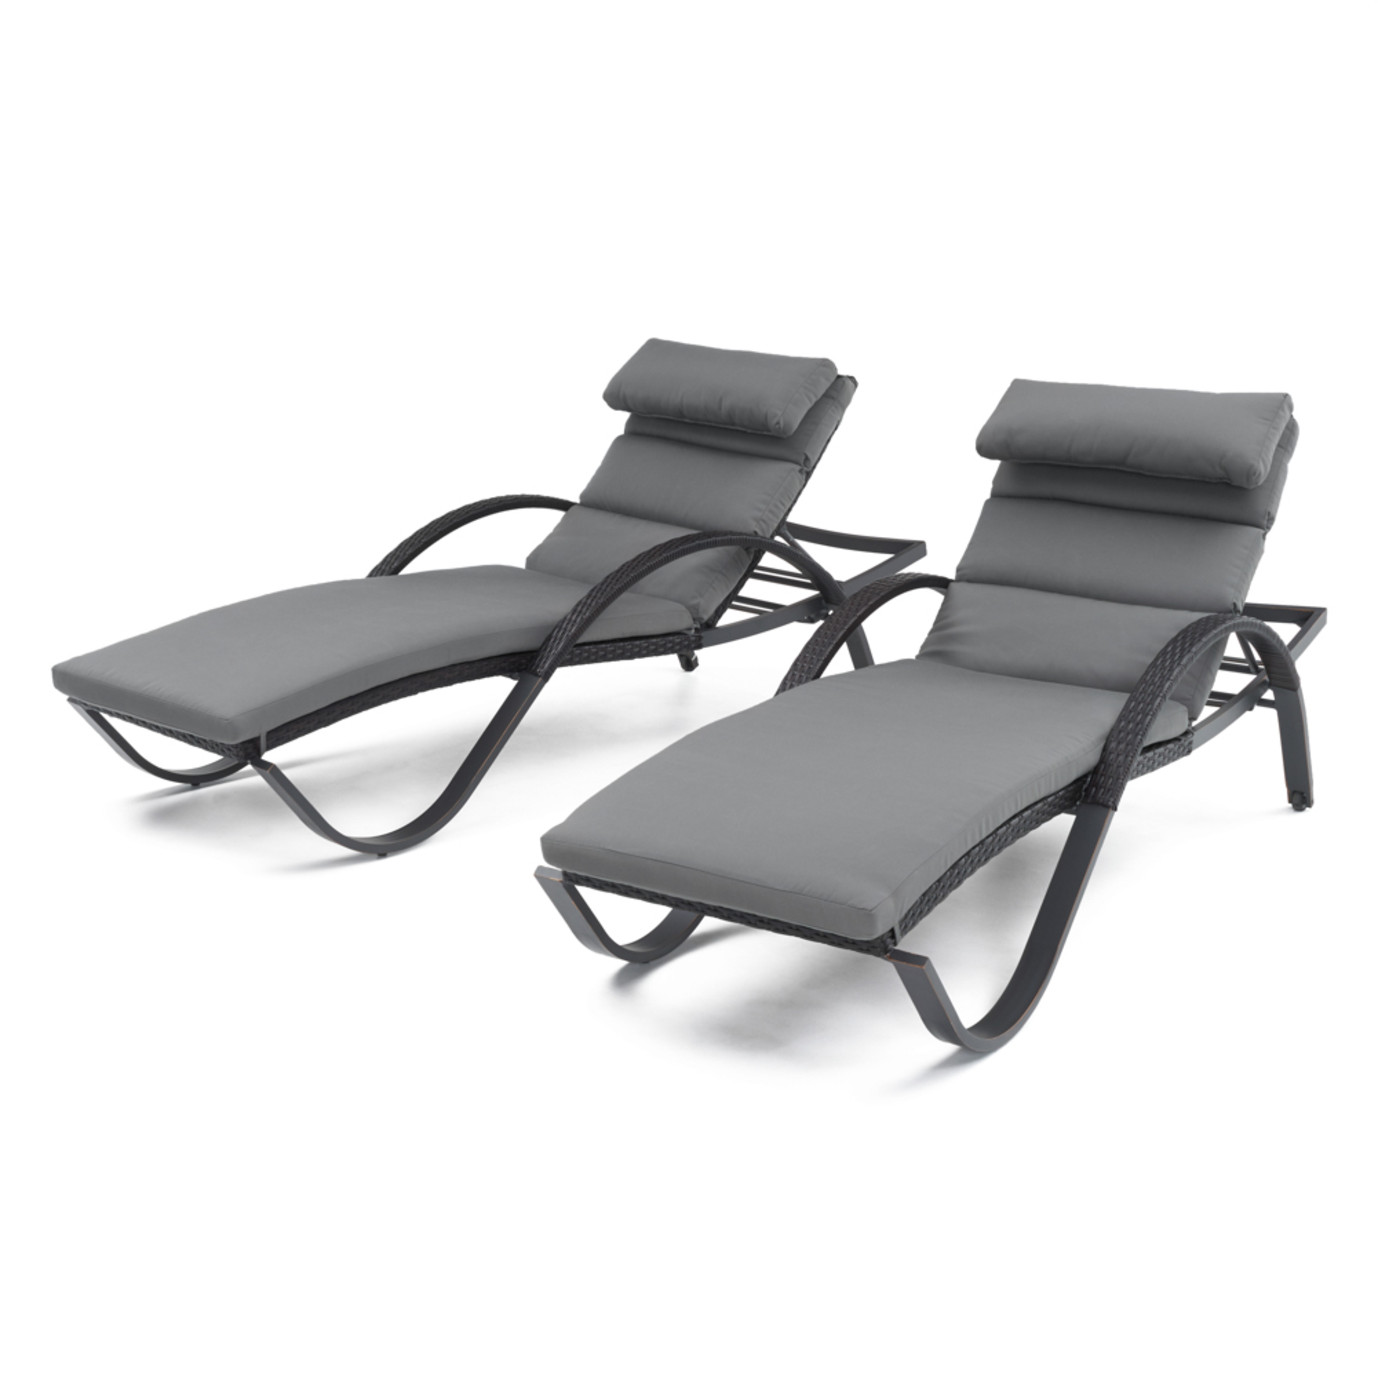 Deco Chaise Lounges With Cushions Charcoal Grey Rst Brands